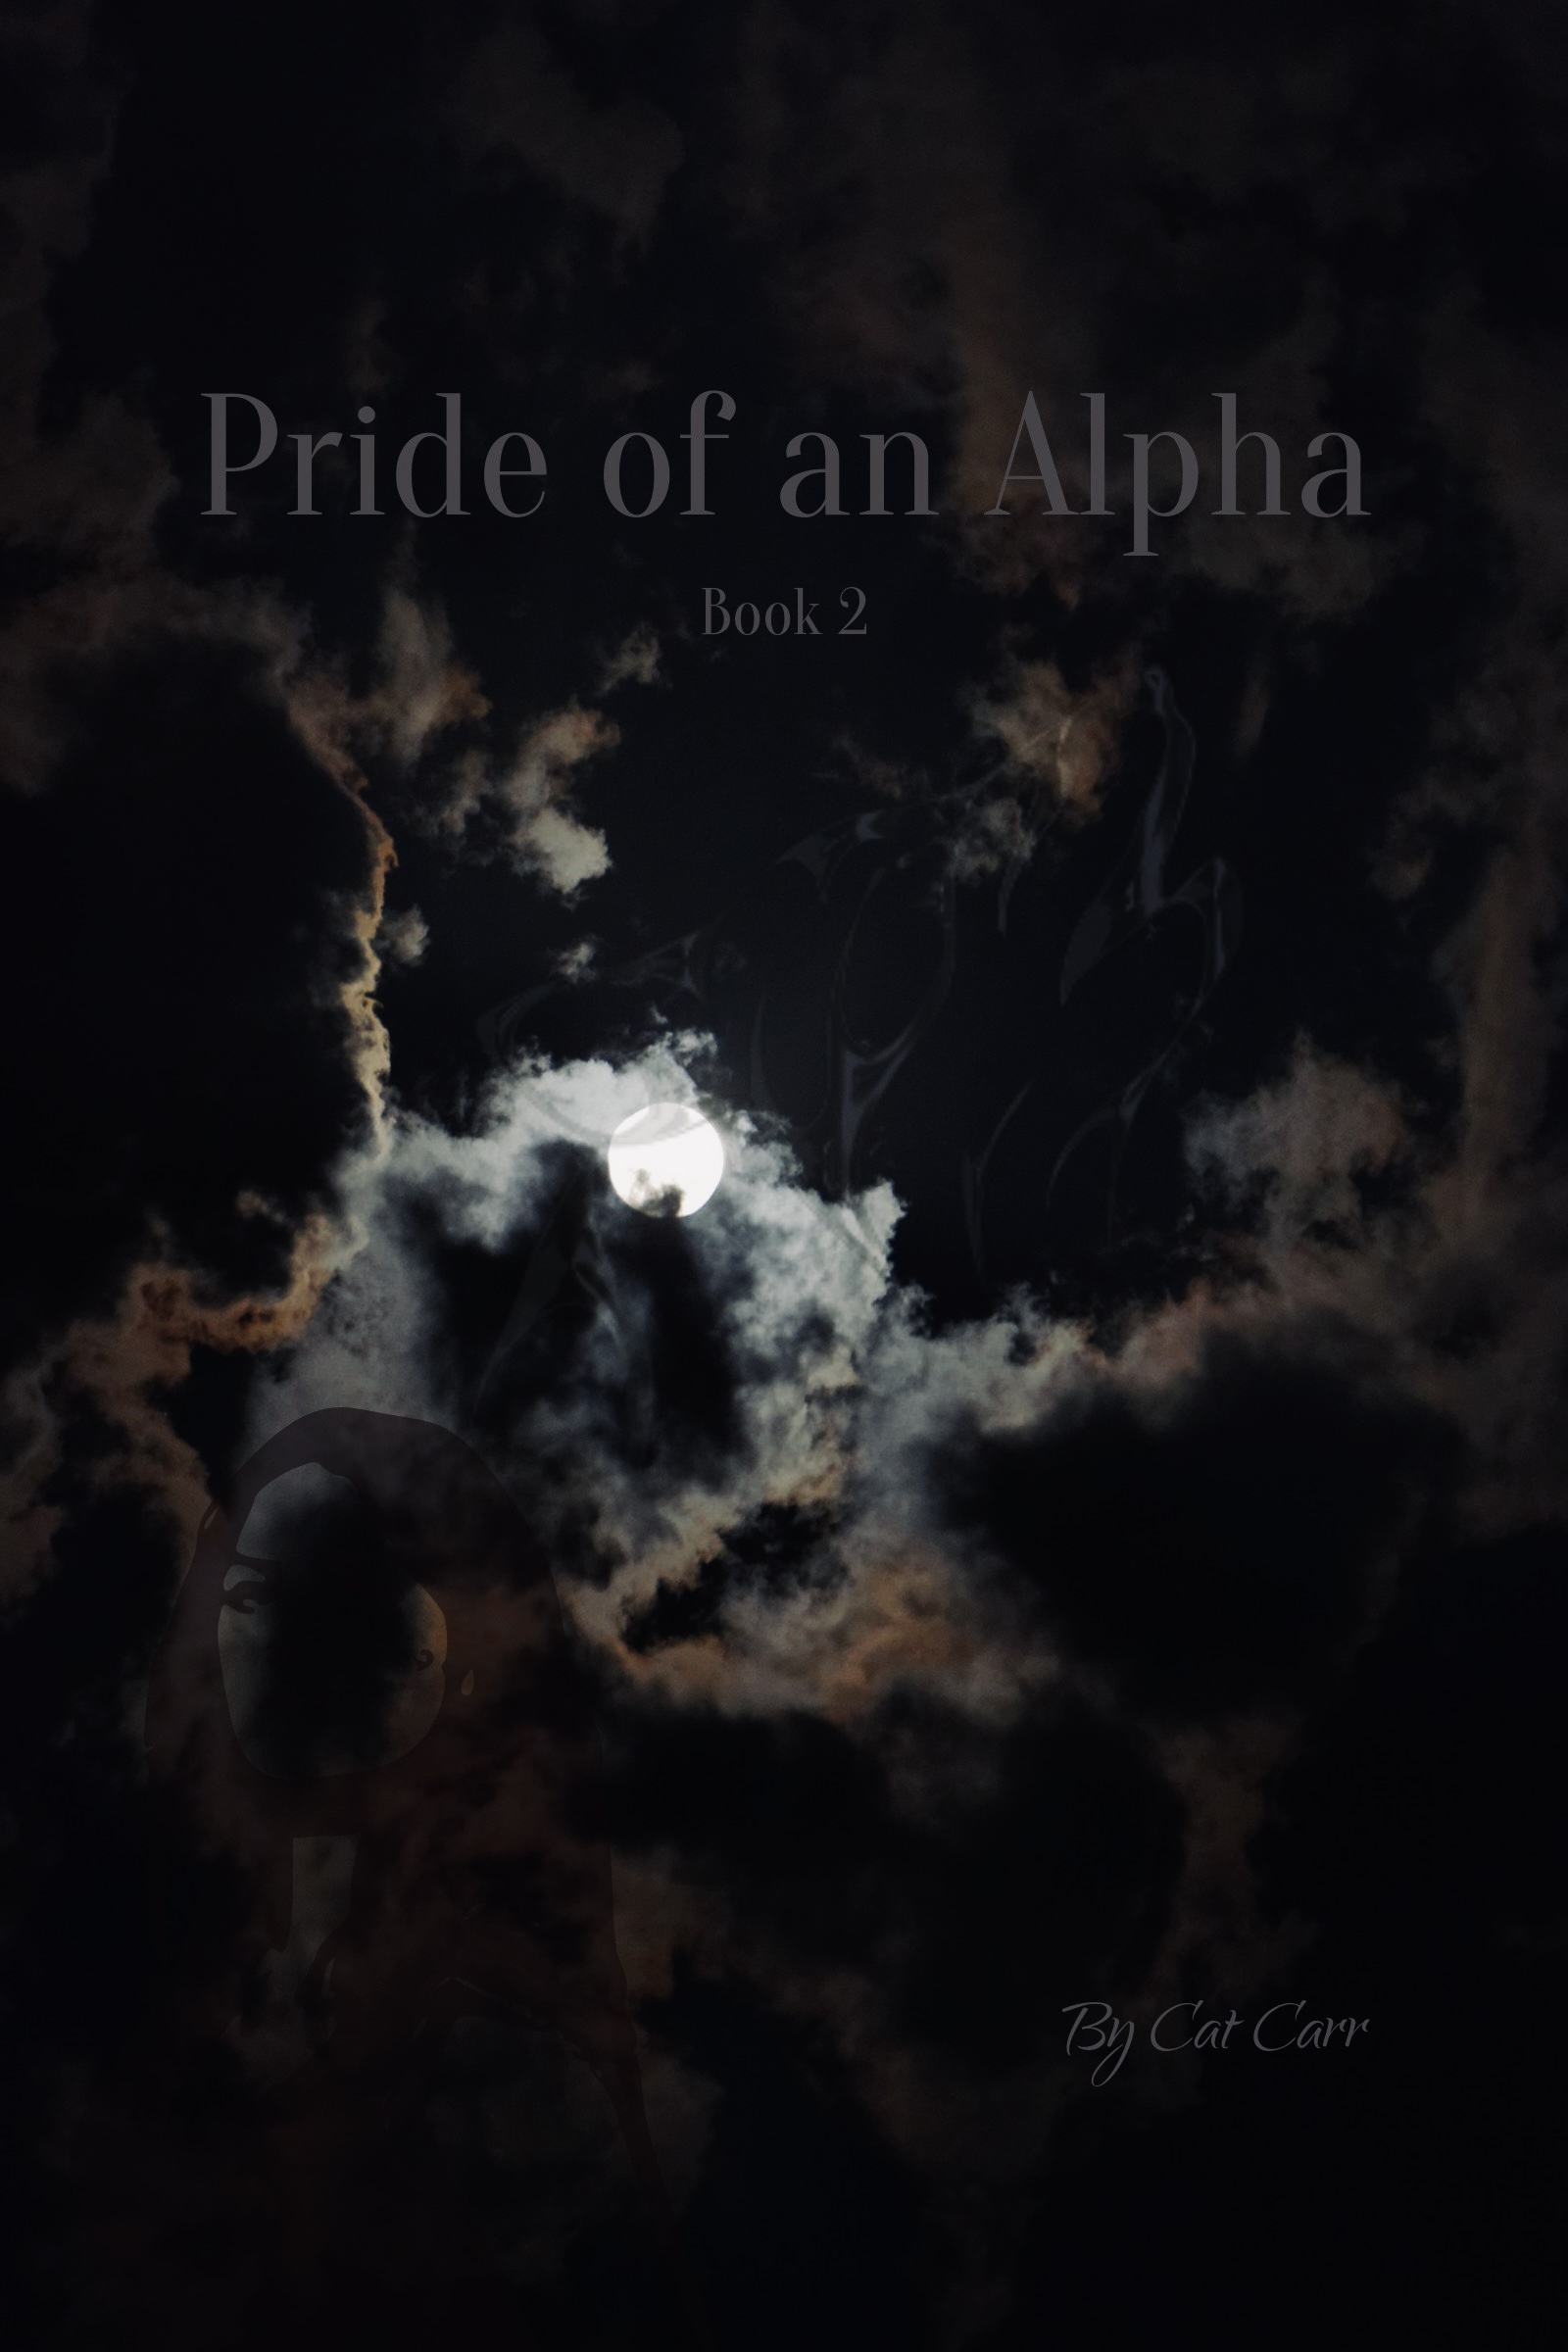 Pride of an Alpha